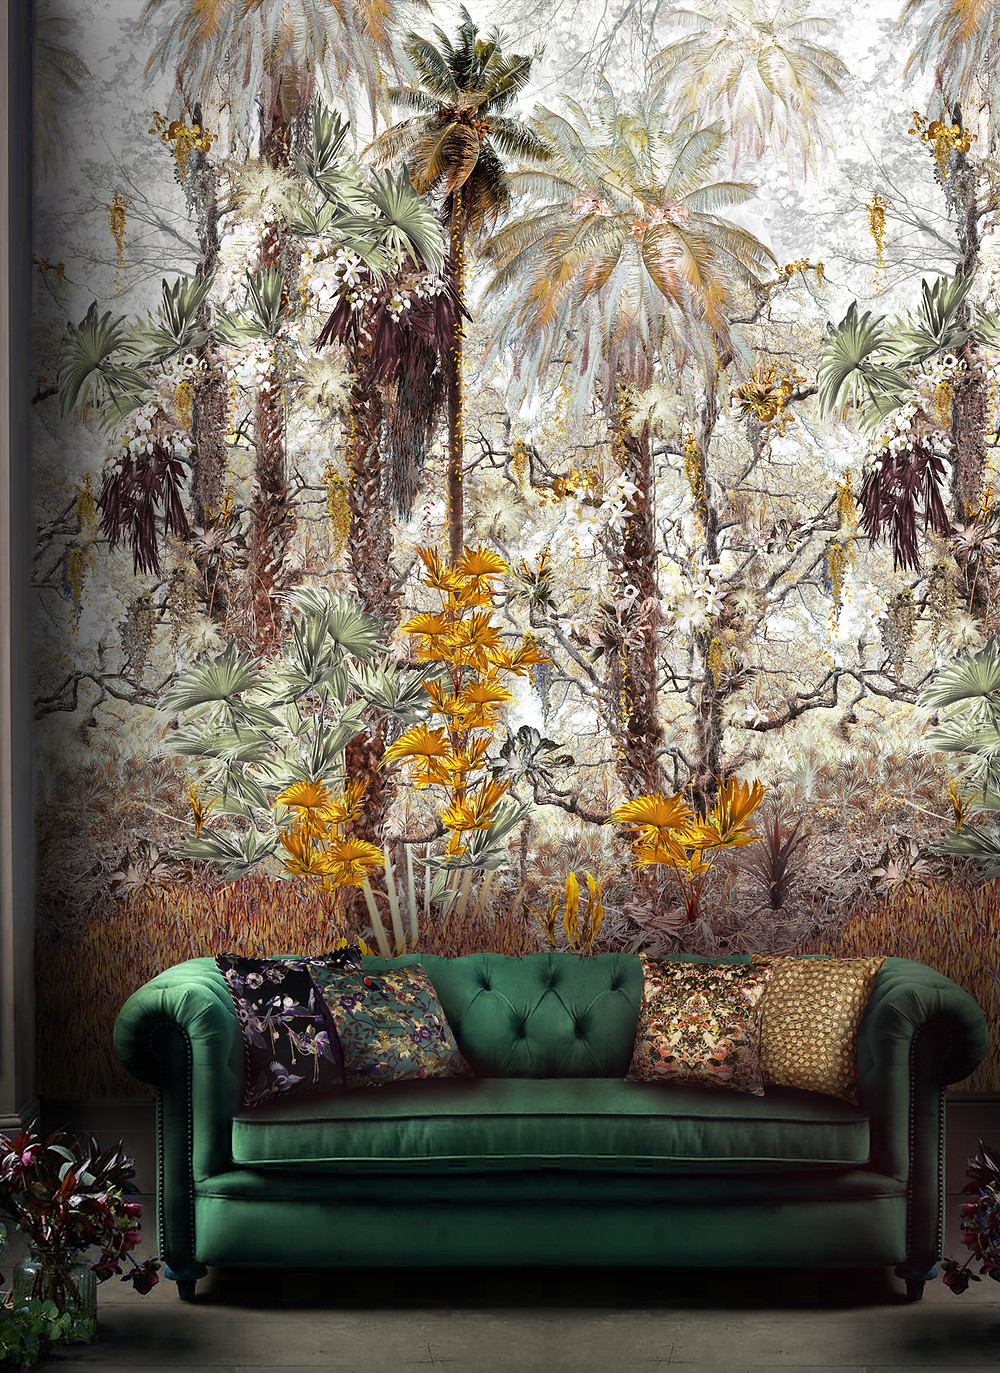 rainforest jungle mural by Good & Craft in living room with green velvet sofa, Good and Craft